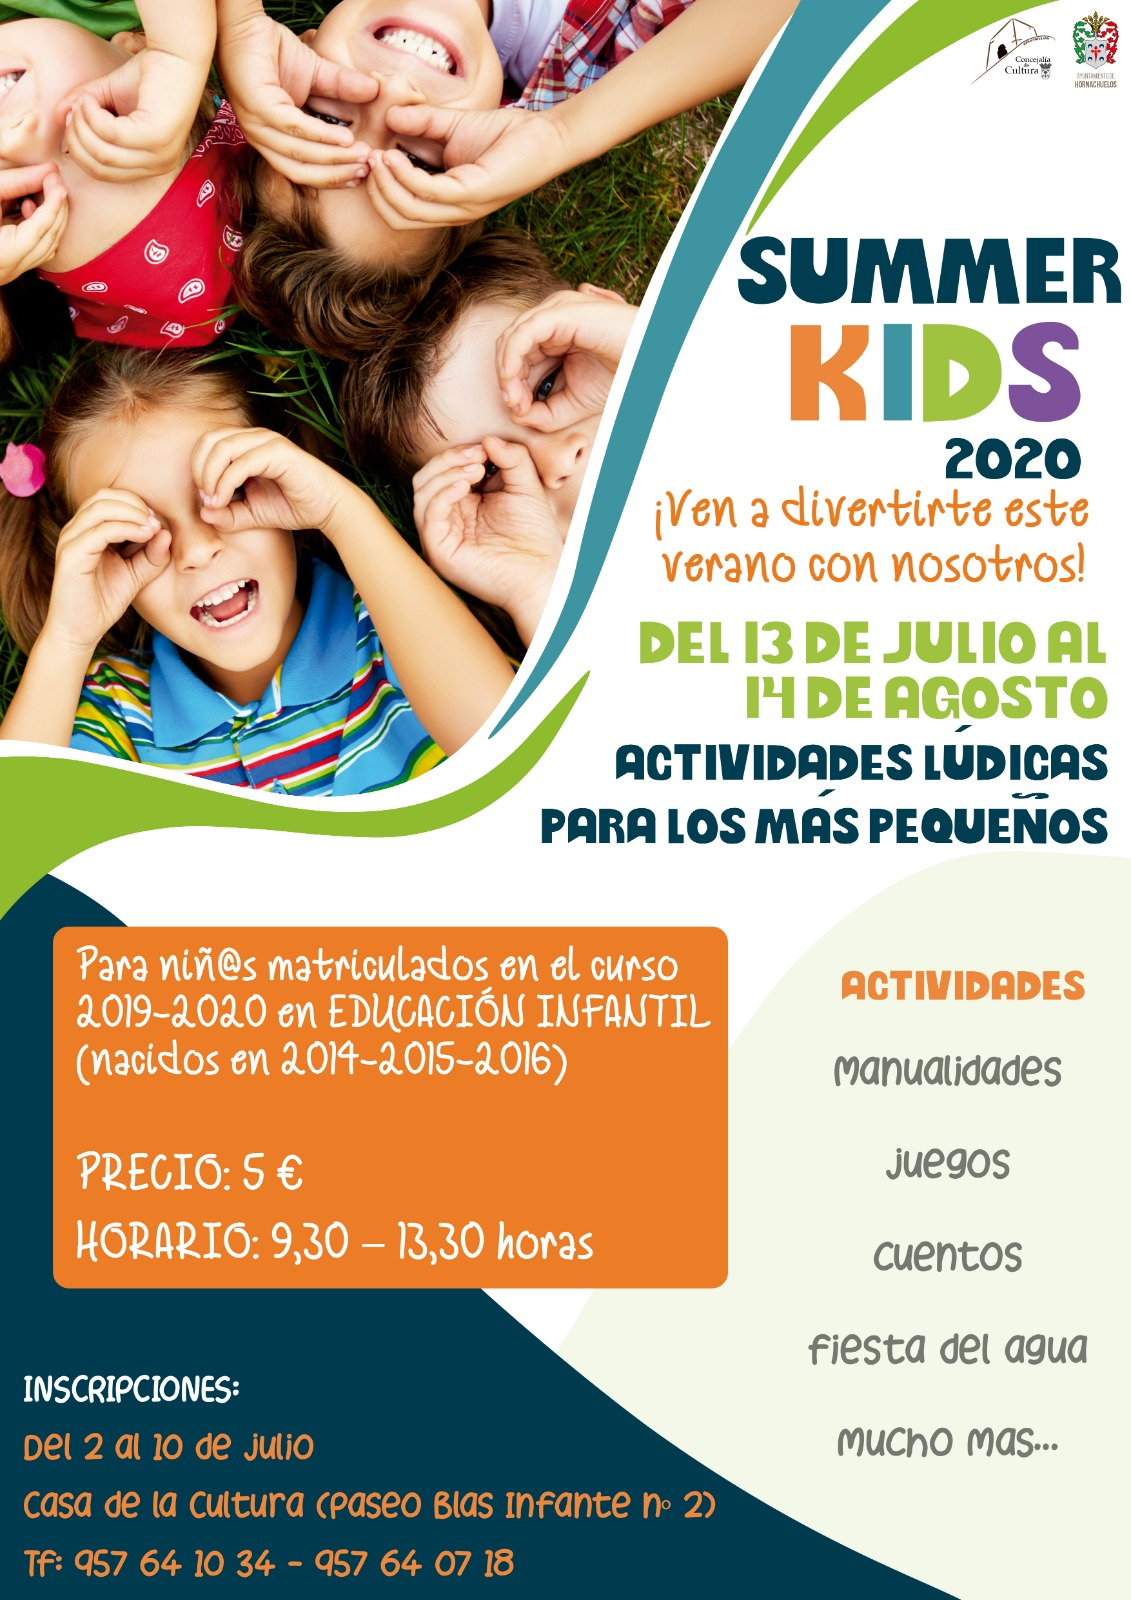 Summer Kids 2020 Hornachuelos